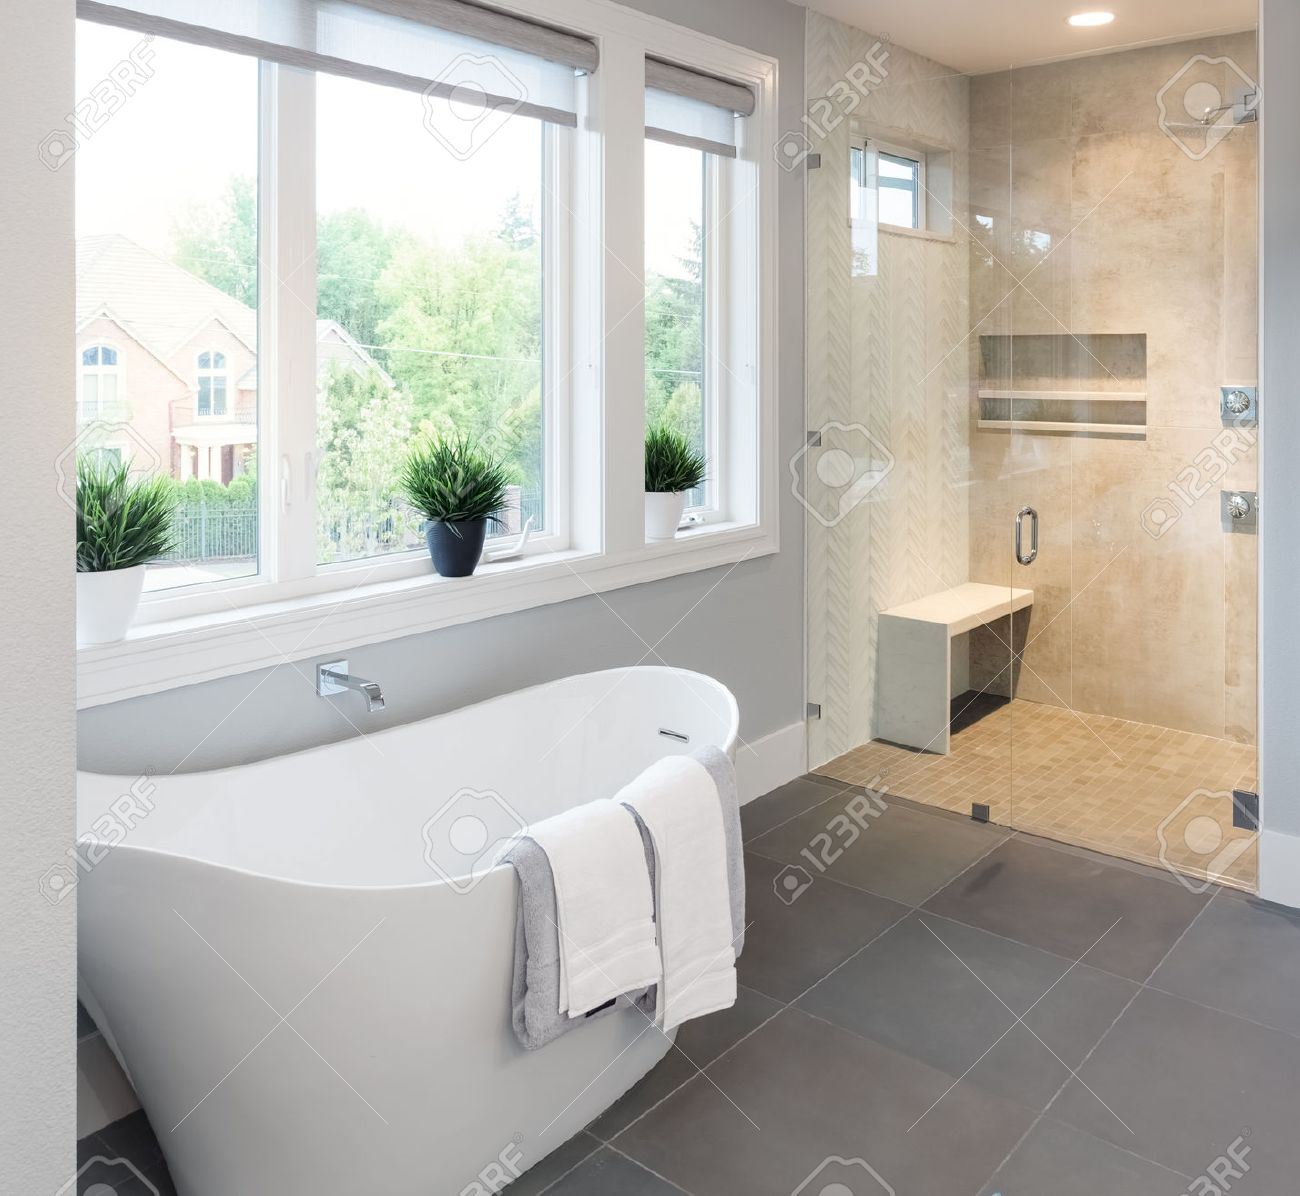 Bathroom interior bathtub and shower in new luxury home stock photo 47256762